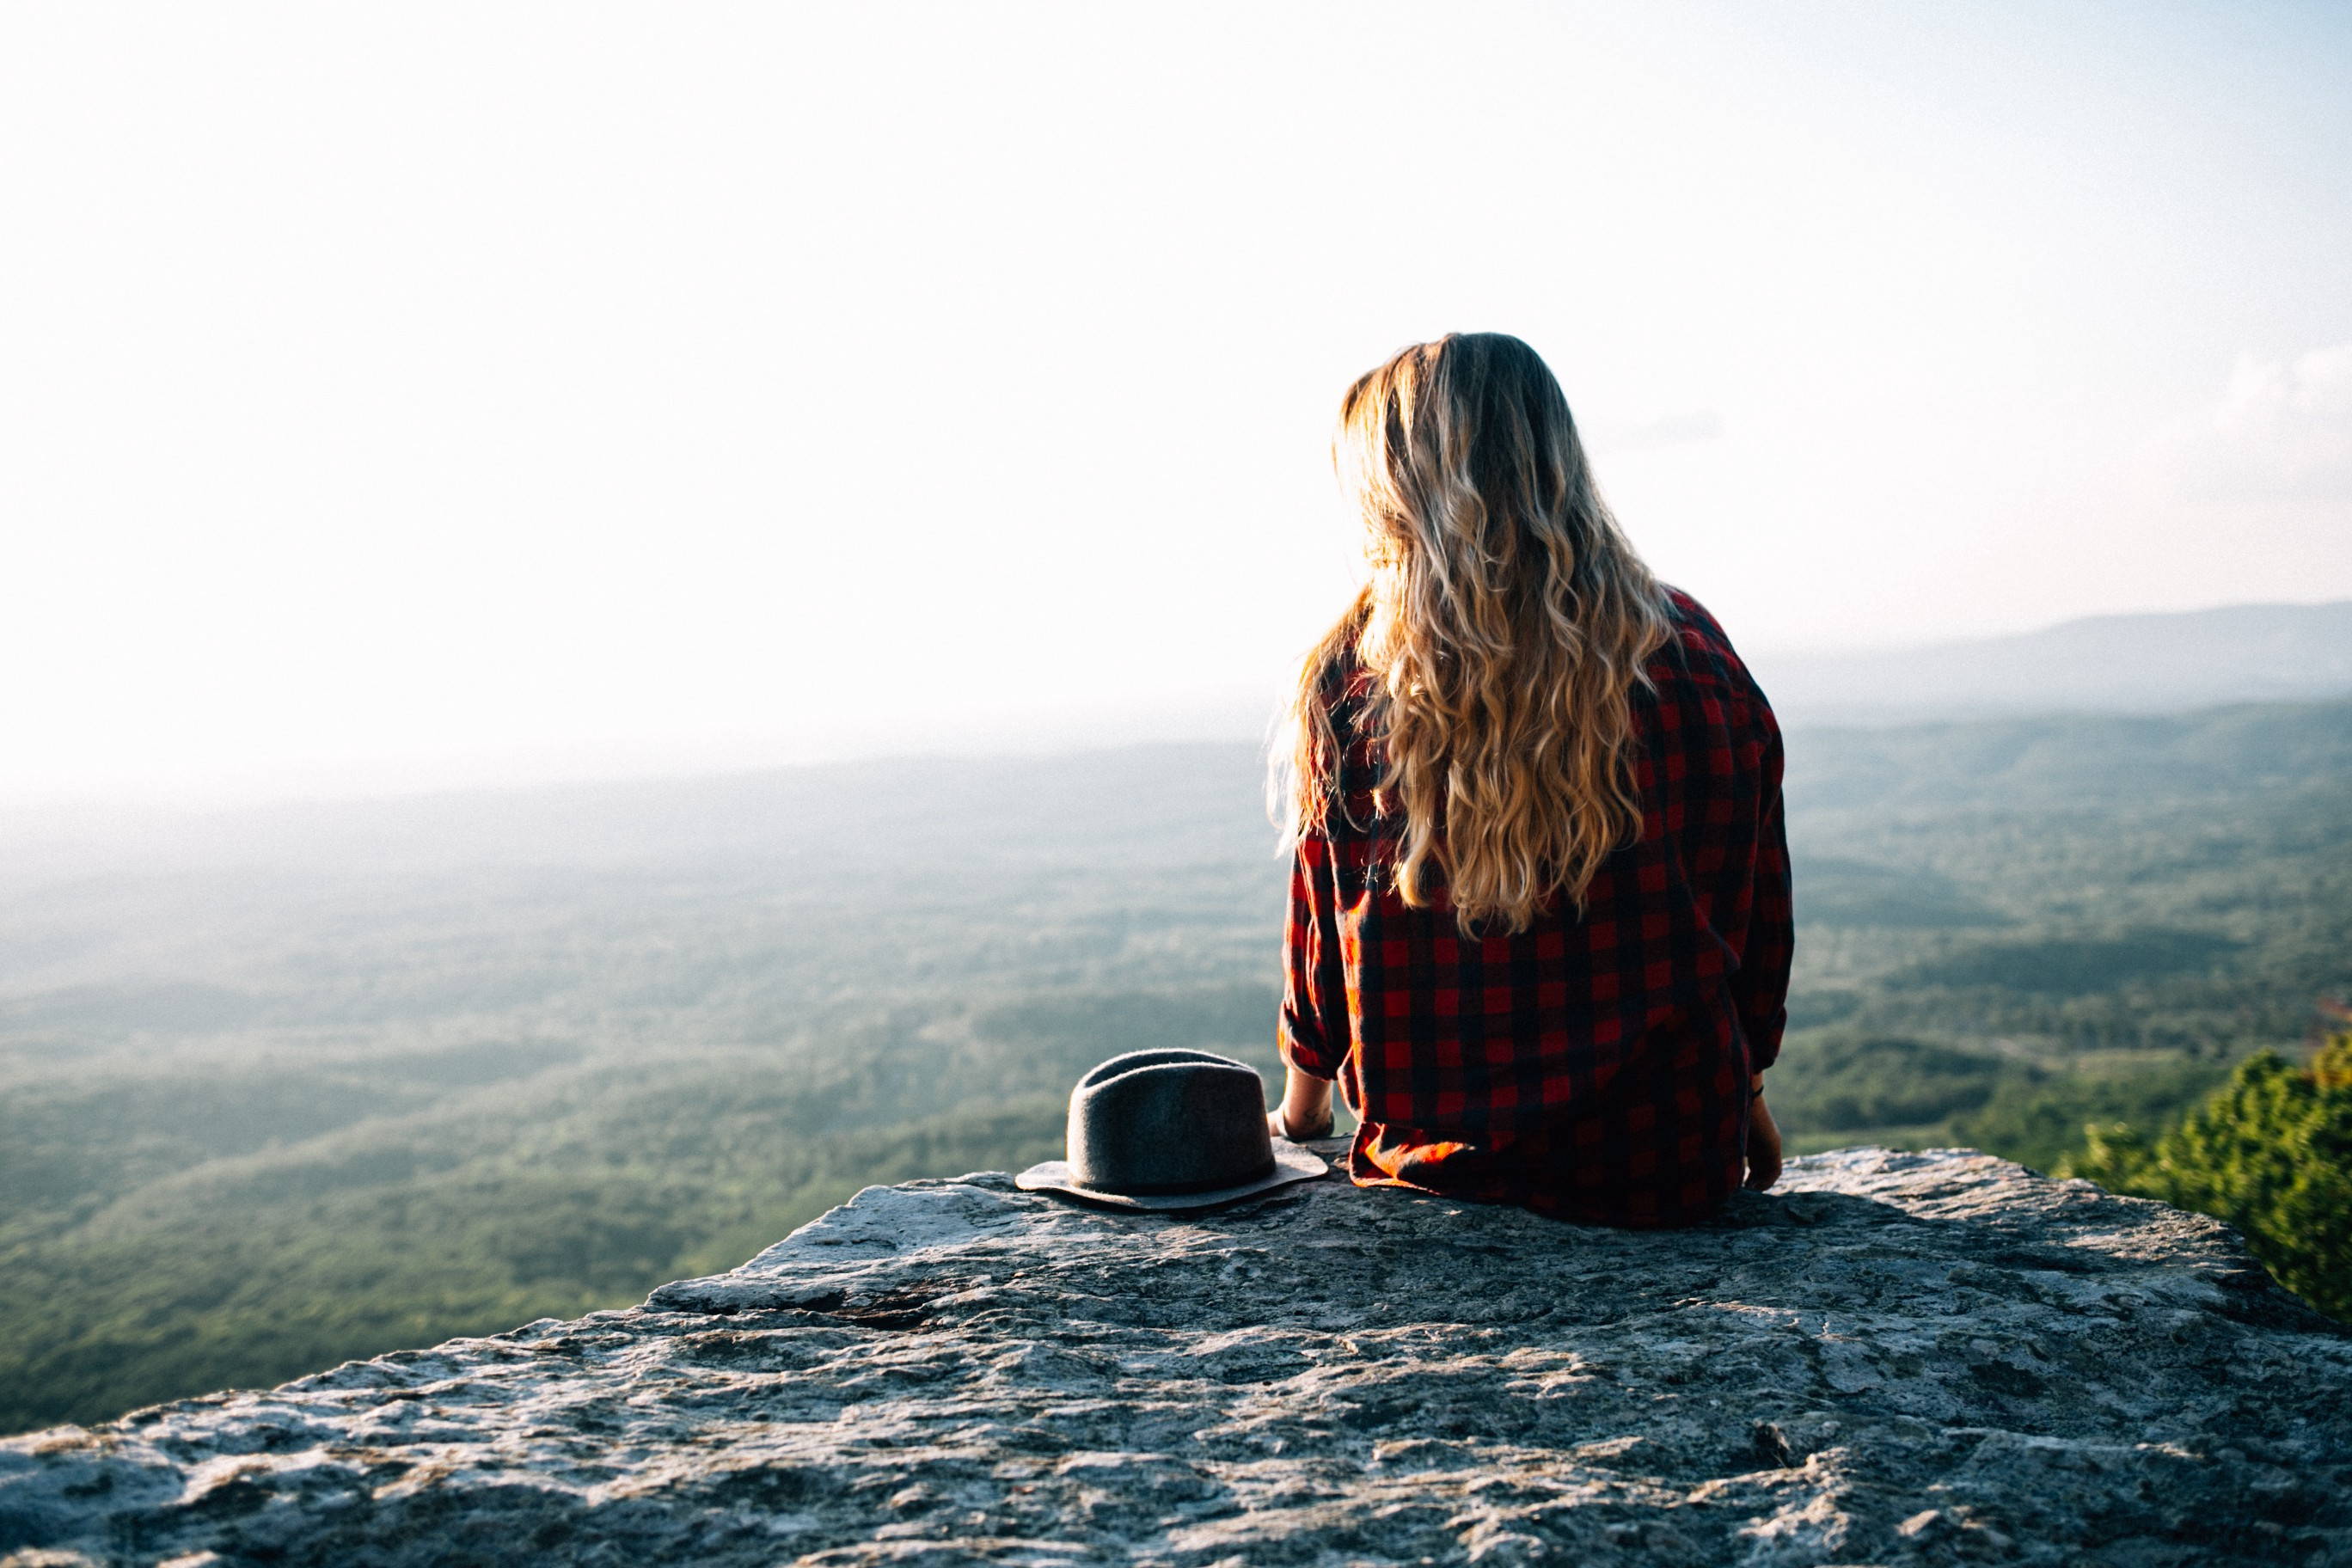 woman sitting on a rock overlooking a drop off, wondering